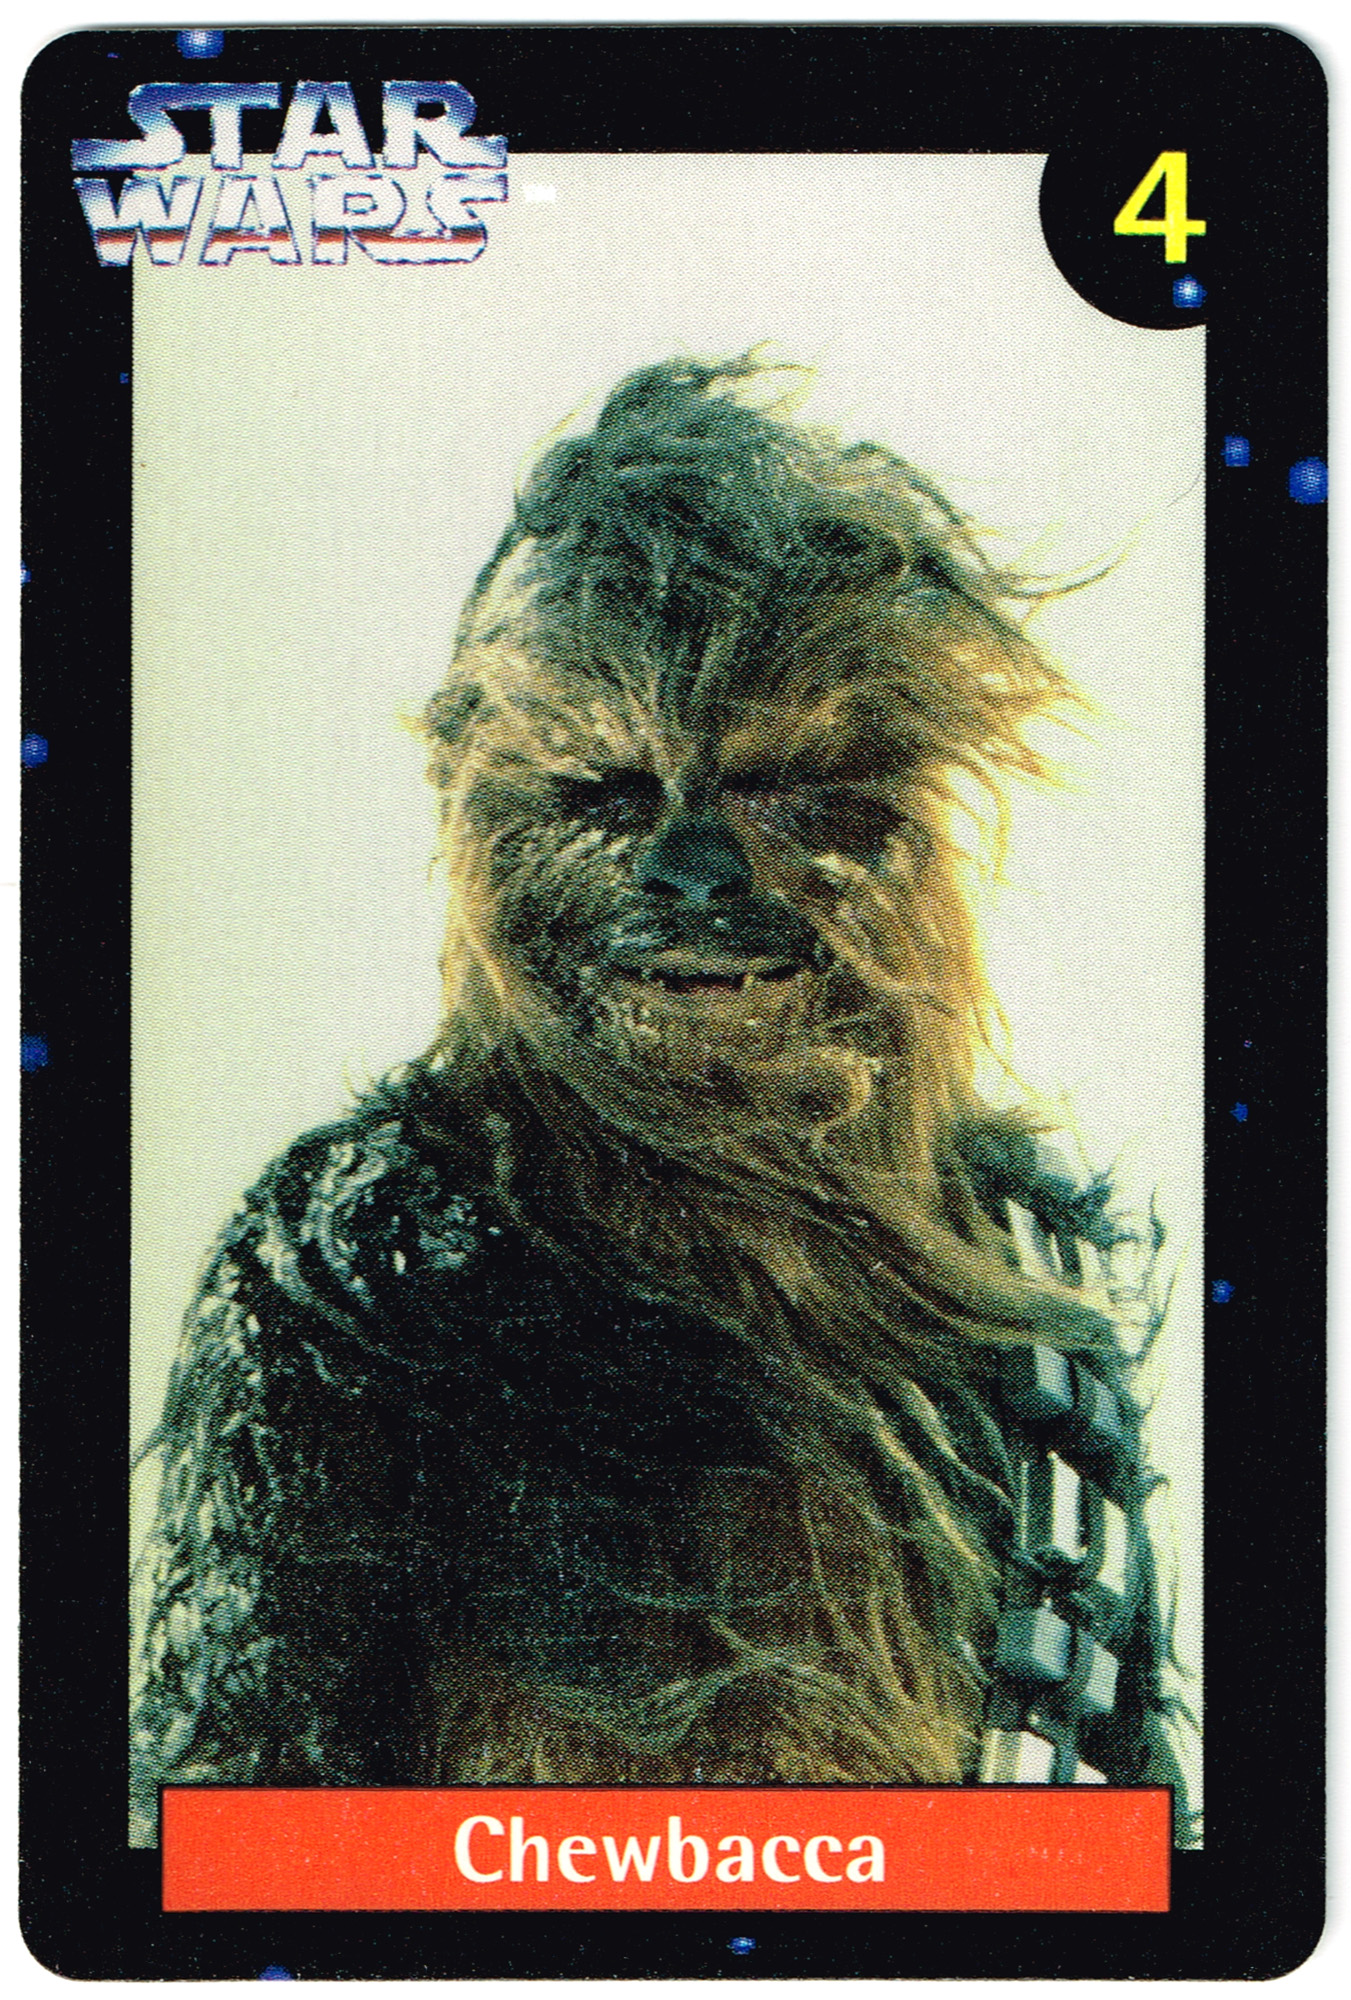 Quality Bakers Card 4 - Chewbacca